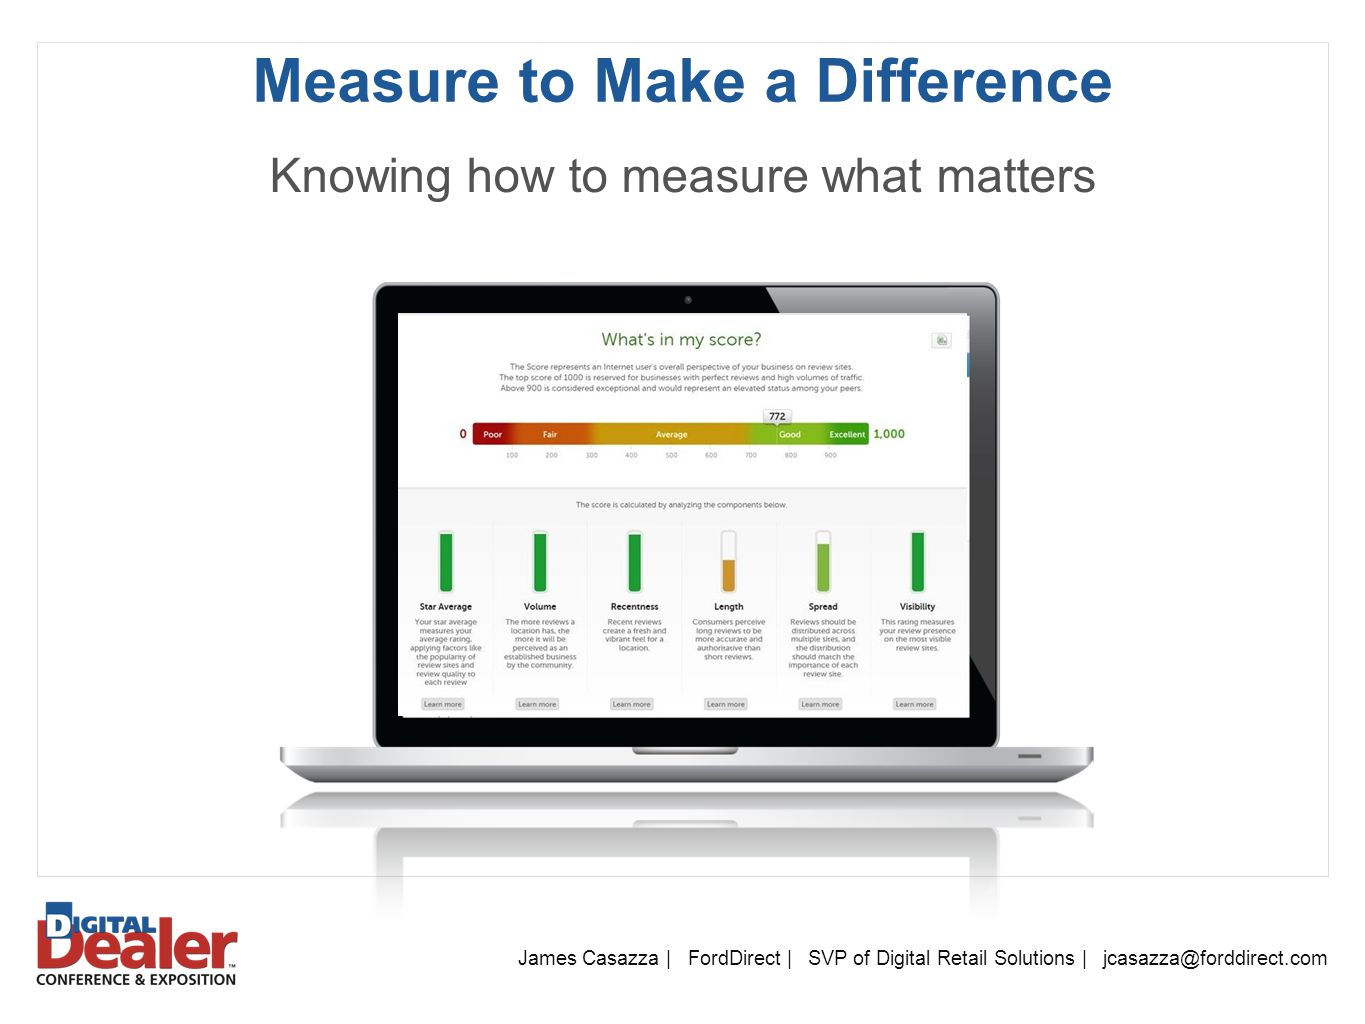 Measure to Make a Difference James Casazza | FordDirect | SVP of Digital Retail Solutions | jcasazza@forddirect.com Knowing how to measure what matters